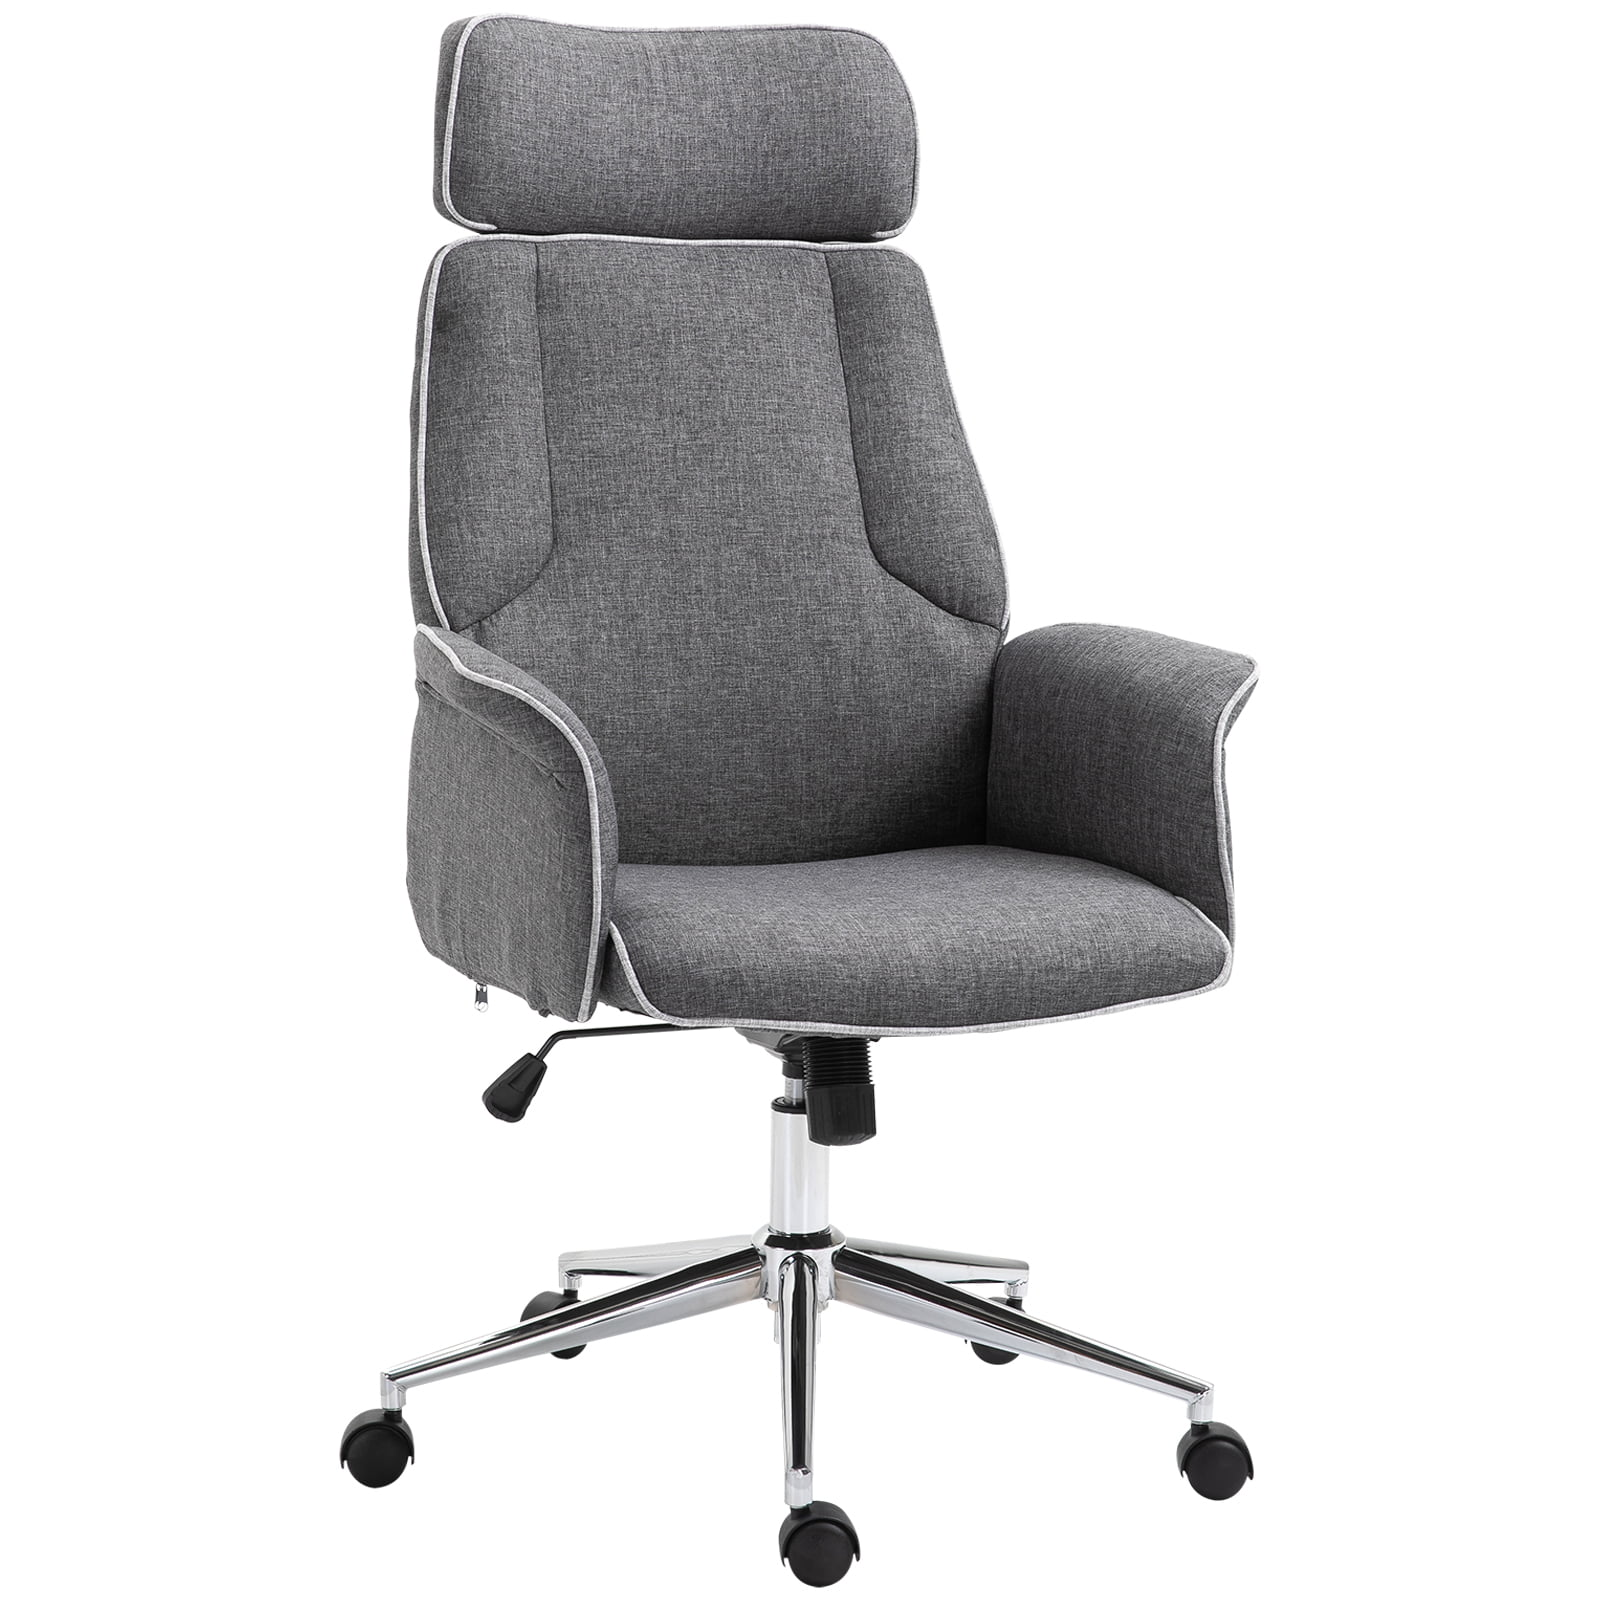 Vinsetto Adjustable Linen Fabric Swivel Home Office Chair